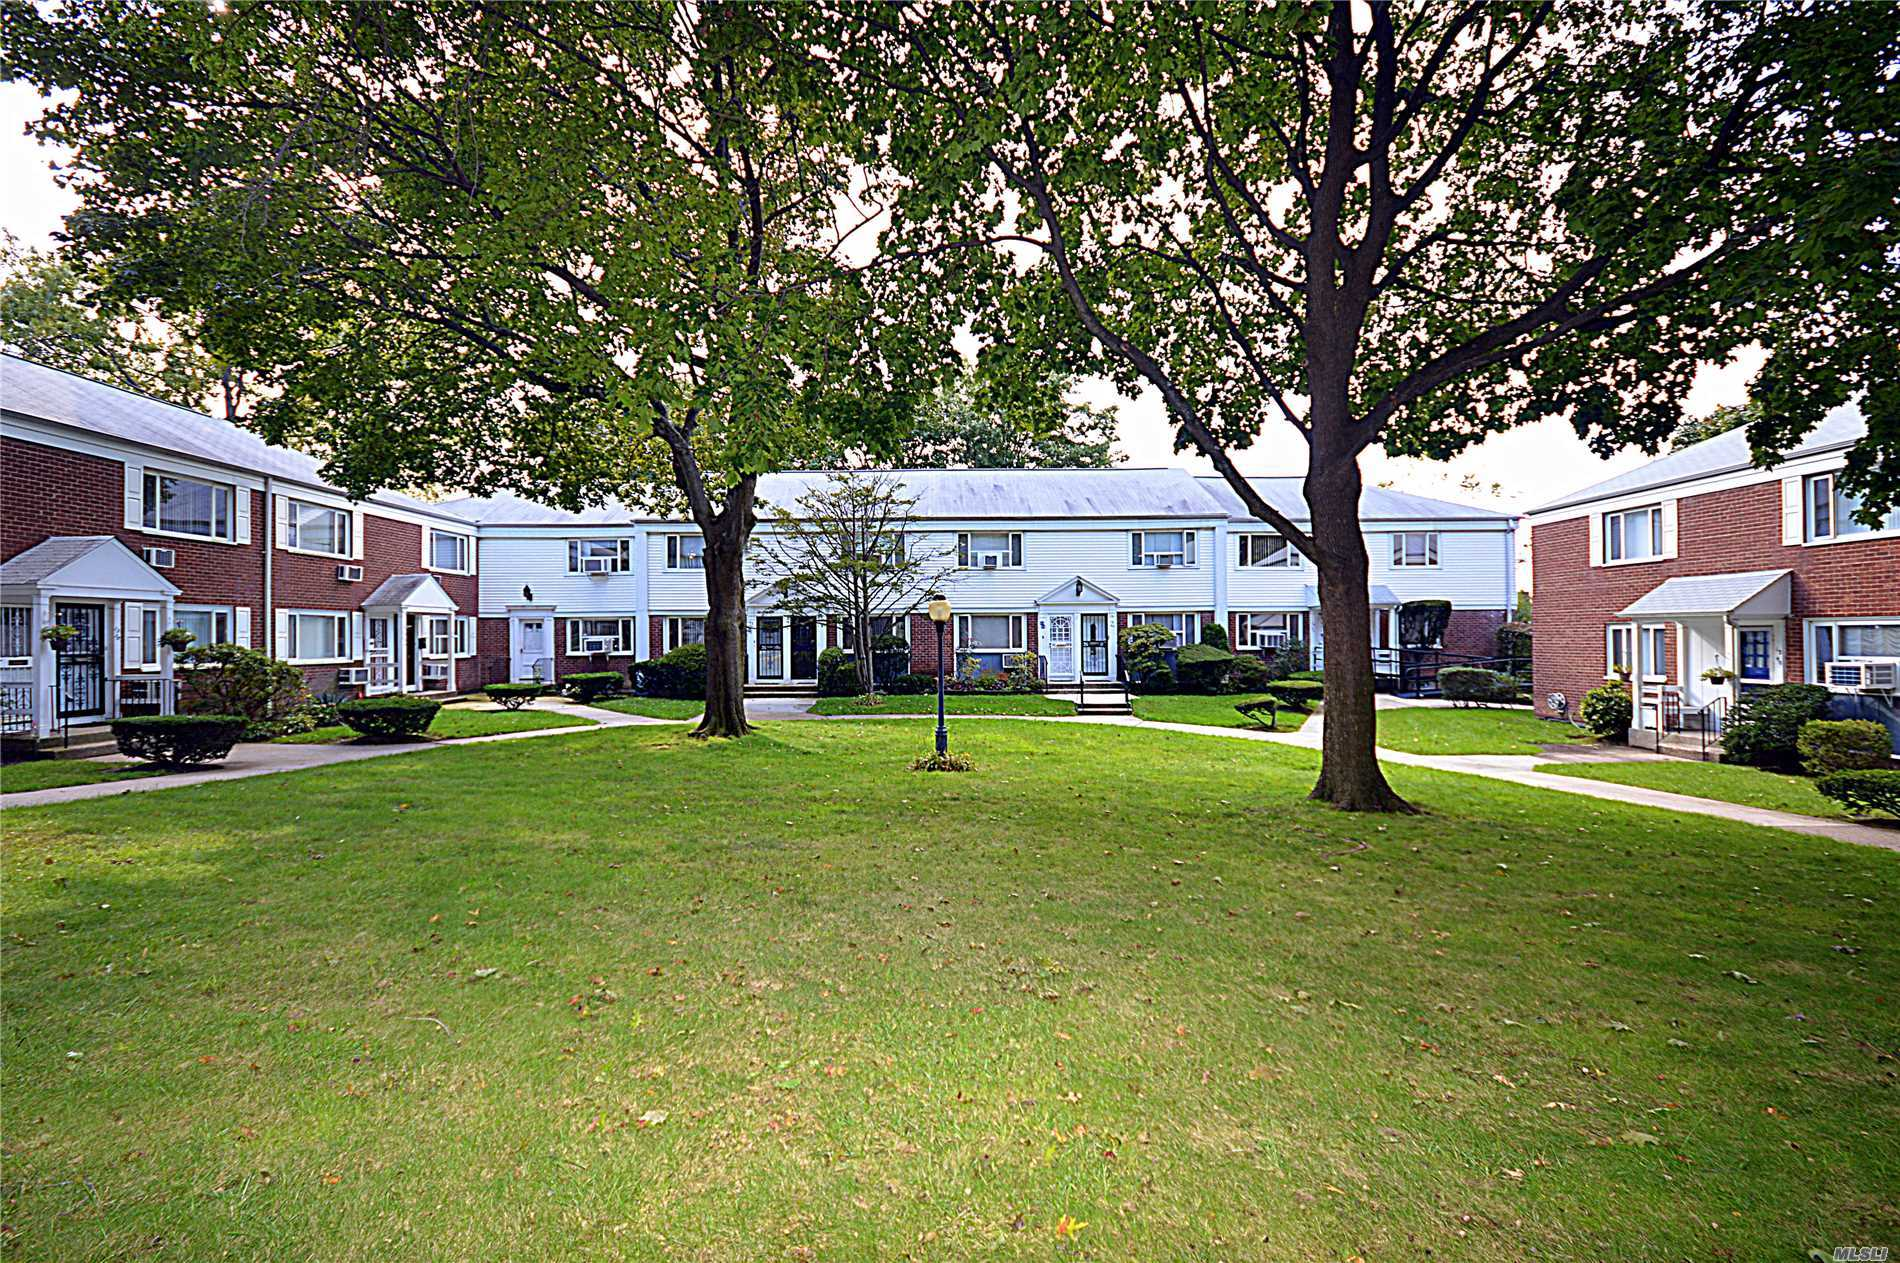 Sun-Lit & Private 2 Bedroom Corner Unit In Bay Terrace. Large Living Room & Master Bedroom With Your Personal Large Storage Attic. In Sect. 1 Of Bay Terrace Coops. Close To Shopping And Restaurants In The Bayterrace Shopping Center